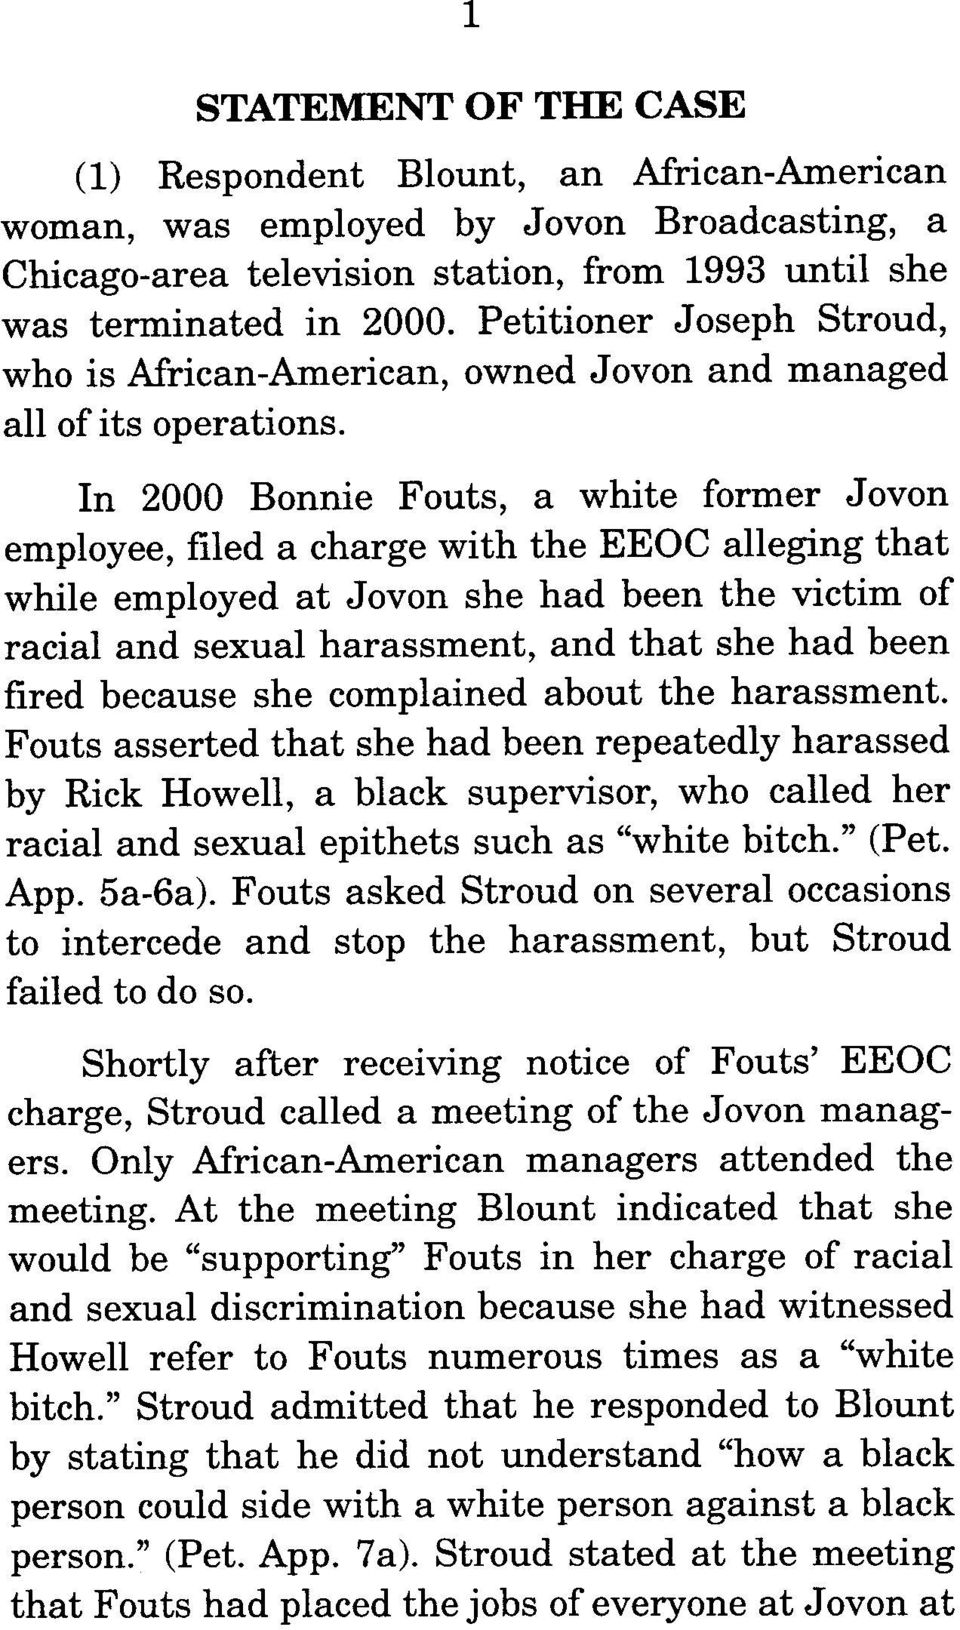 In 2000 Bonnie Fouts, a white former Jovon employee, filed a charge with the EEOC alleging that while employed at Jovon she had been the victim of racial and sexual harassment, and that she had been